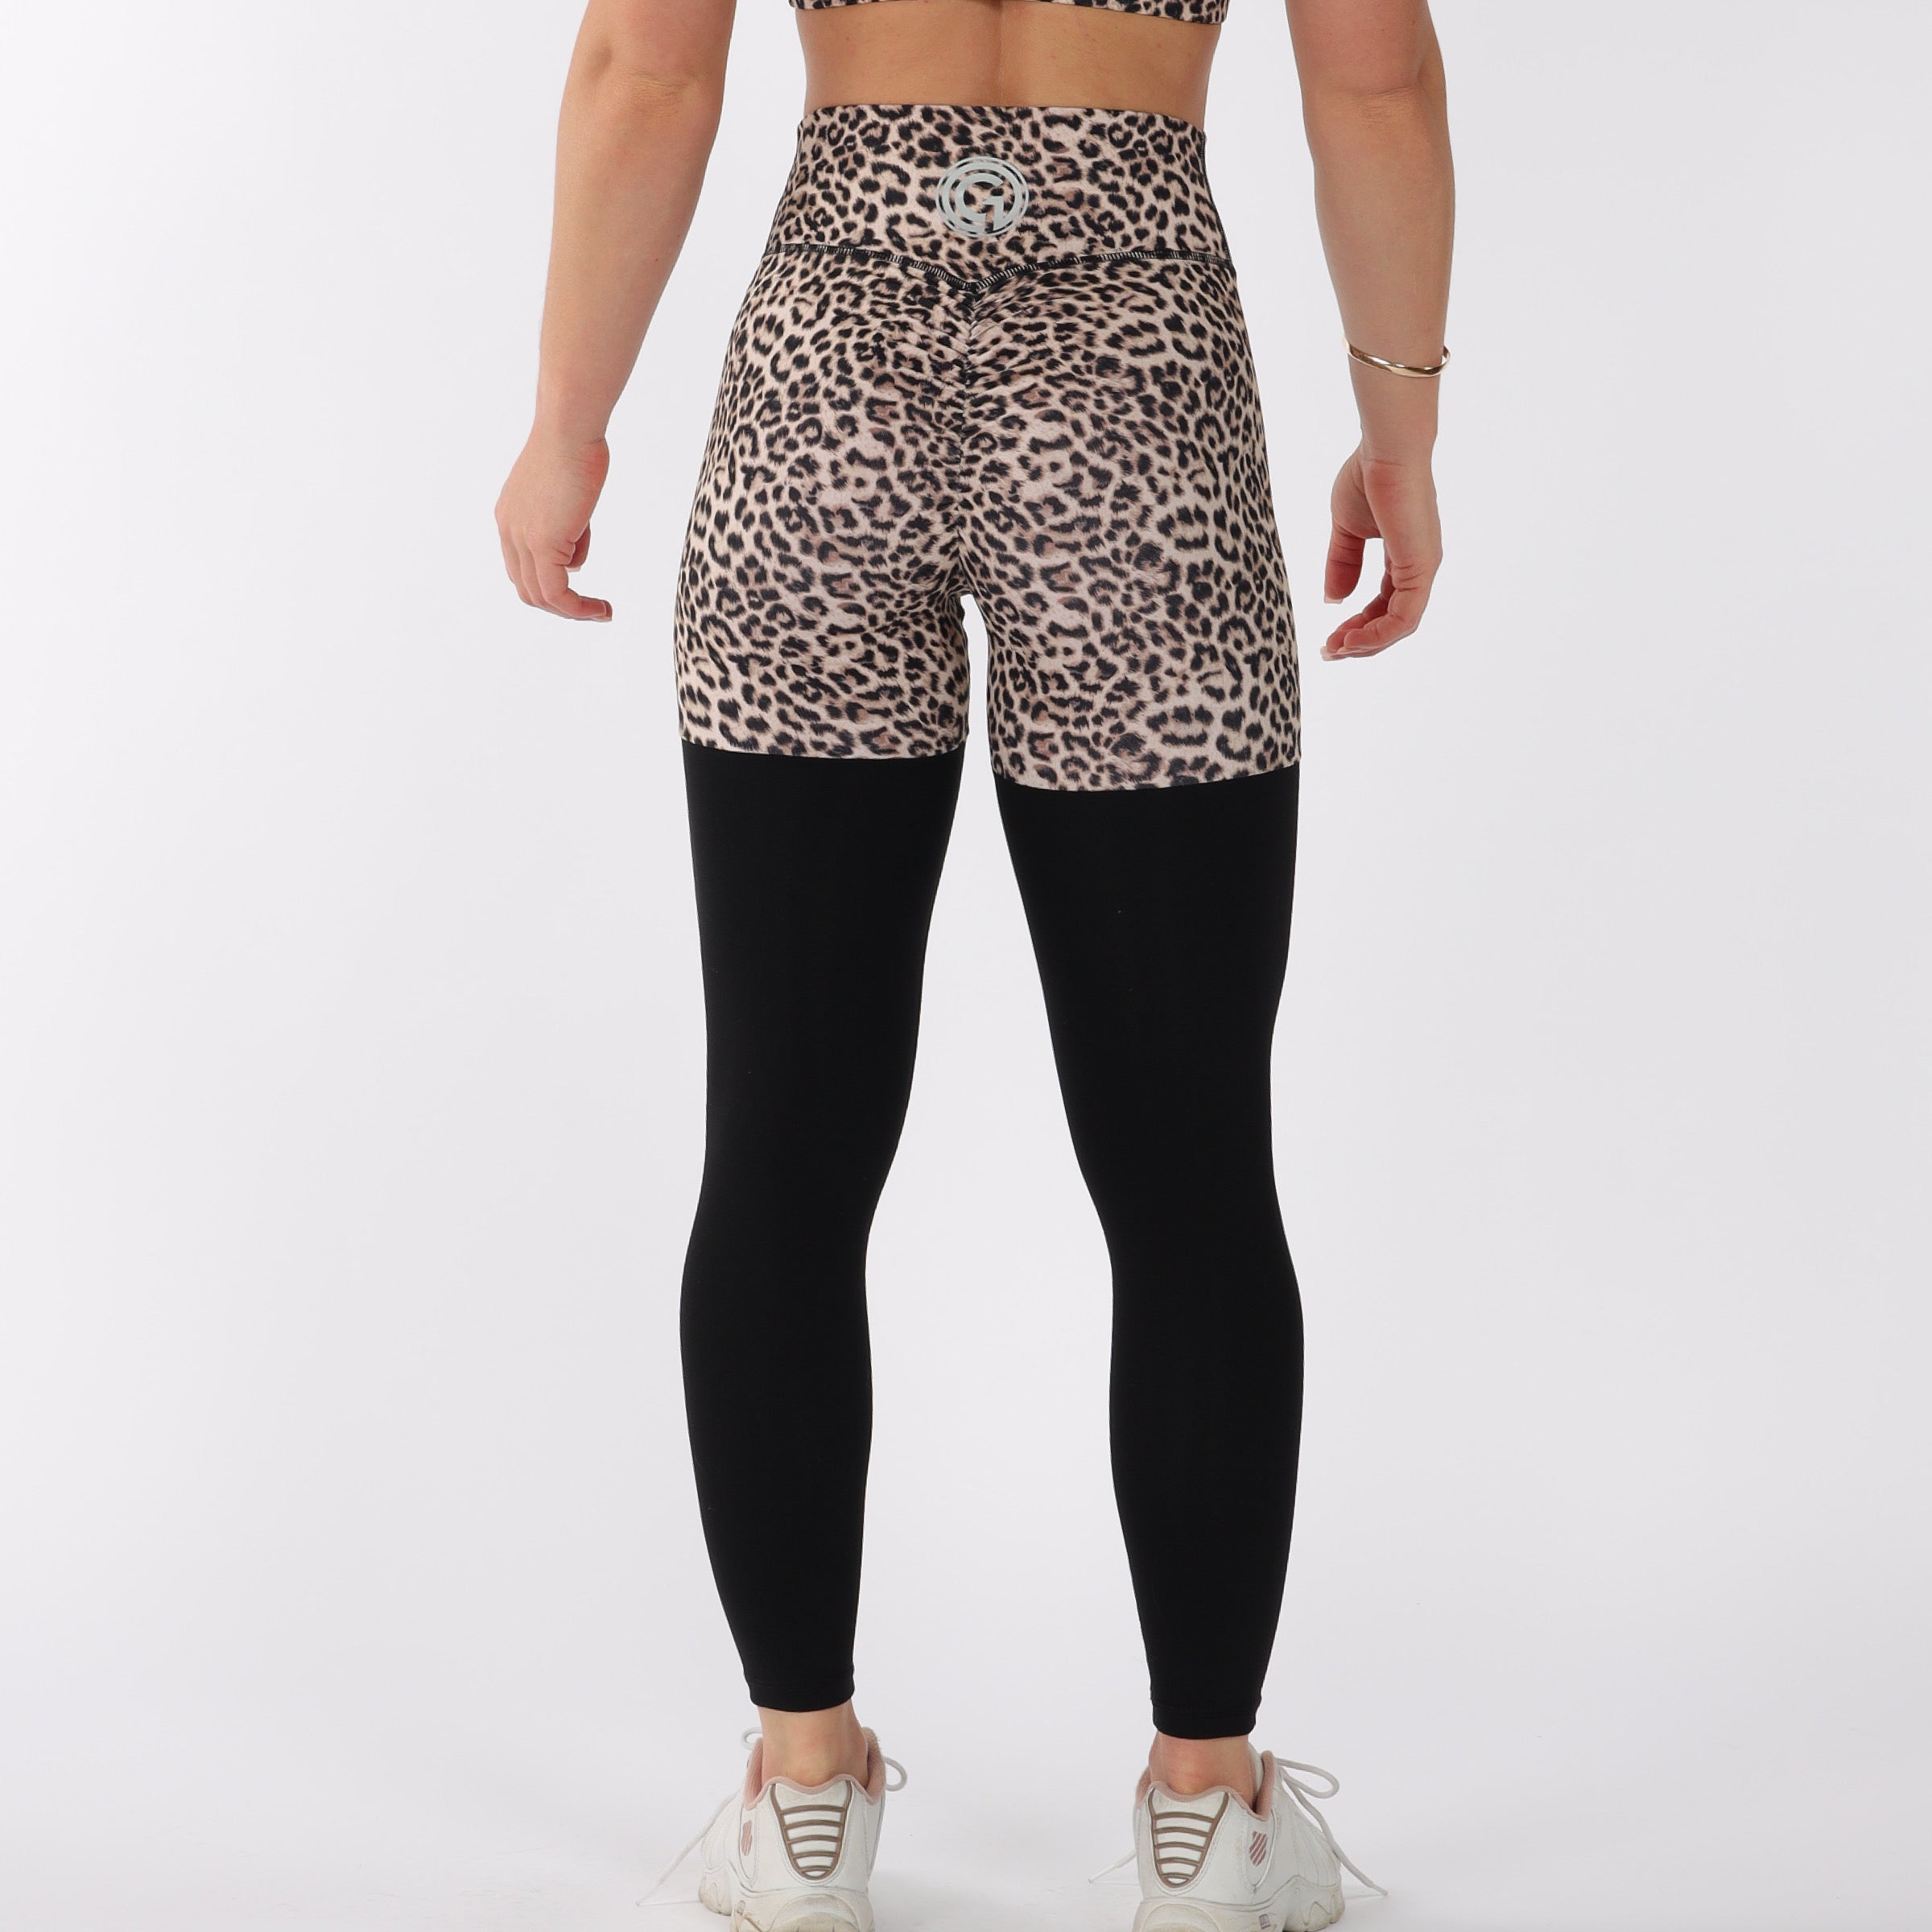 FULL LENGTH 2 TONE SCRUNCH BUM - LEOPARD/BLACK